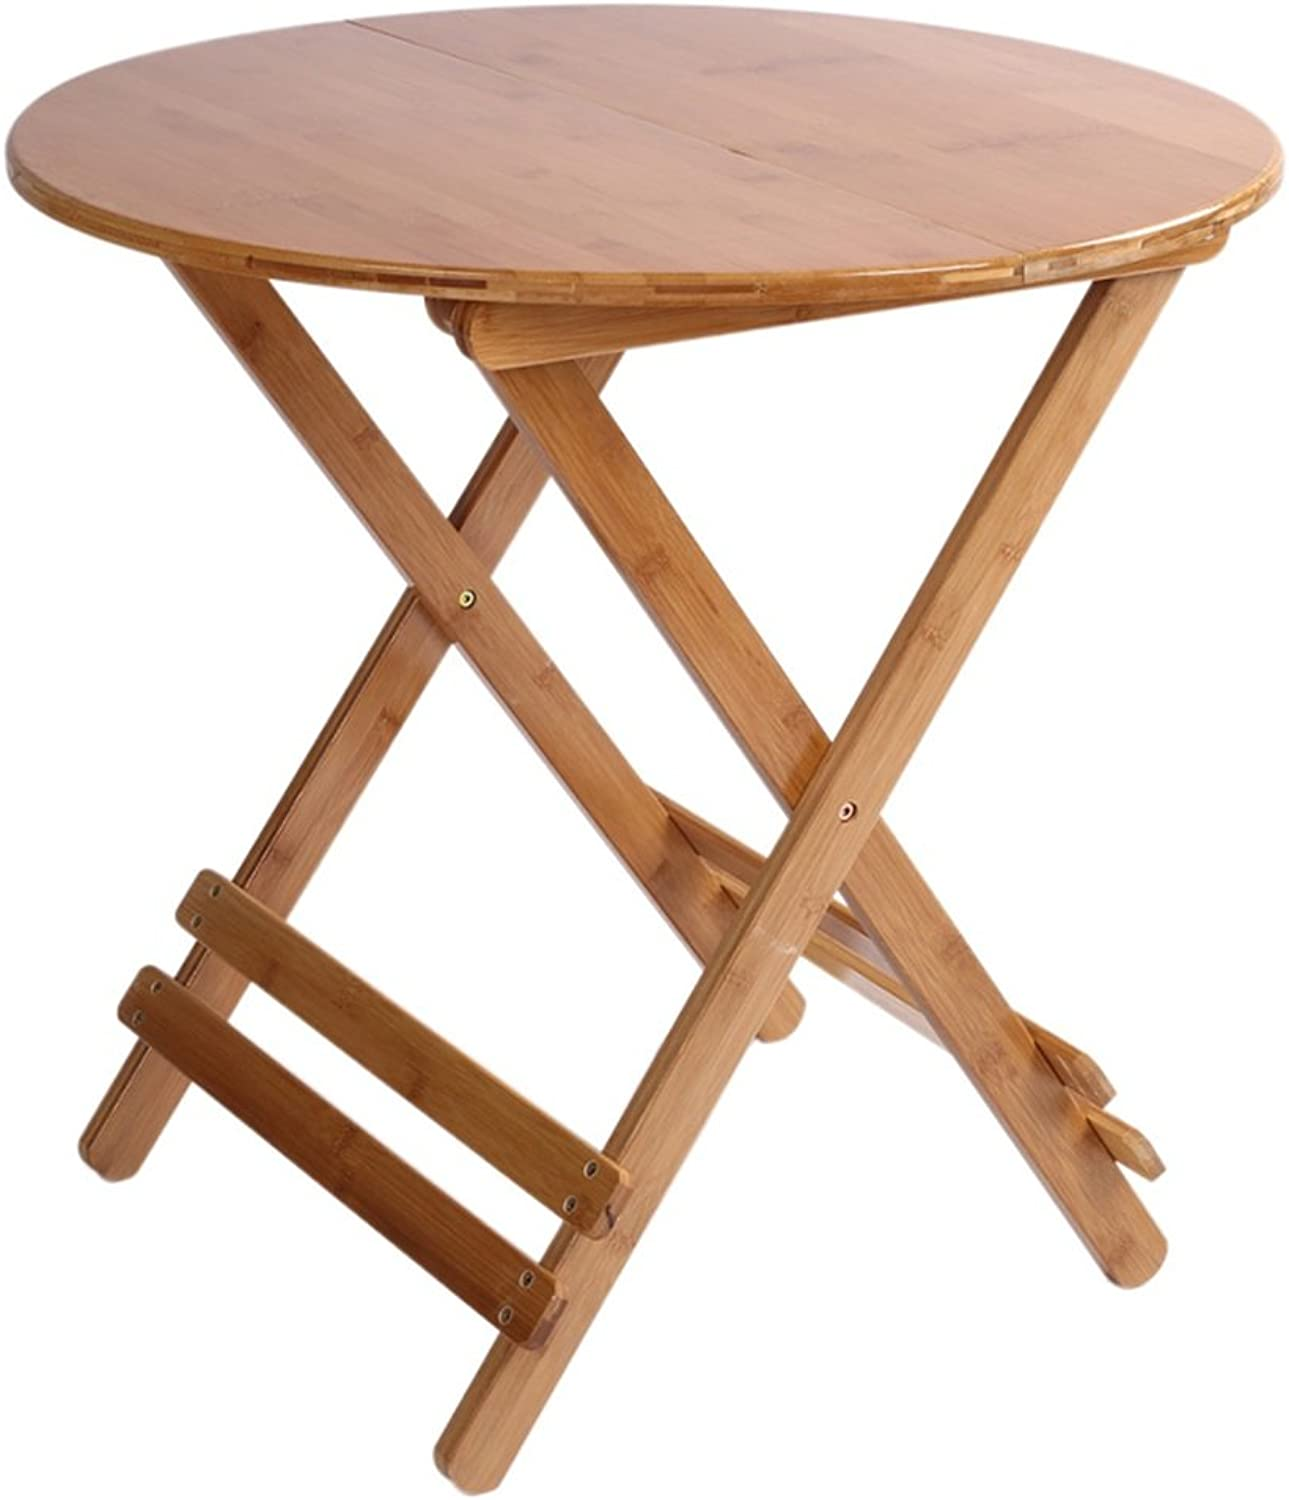 Tables Folding Table Bamboo Portable Dining Table Garden (color   Round table-58X50CM)